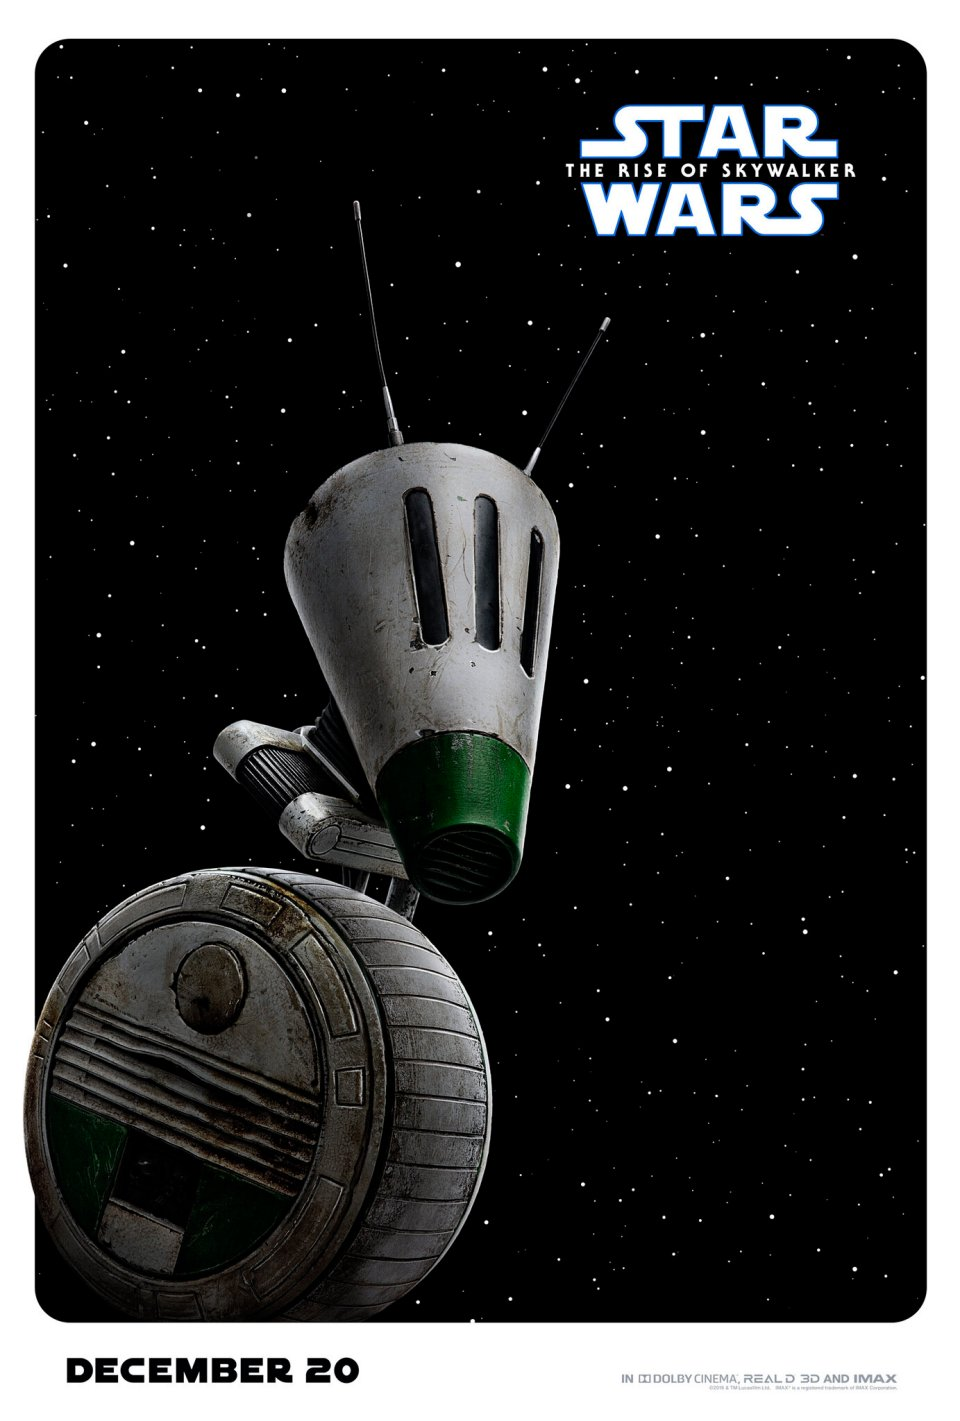 11-character-posters-released-for-star-wars-the-rise-of-skywalker10.jpg